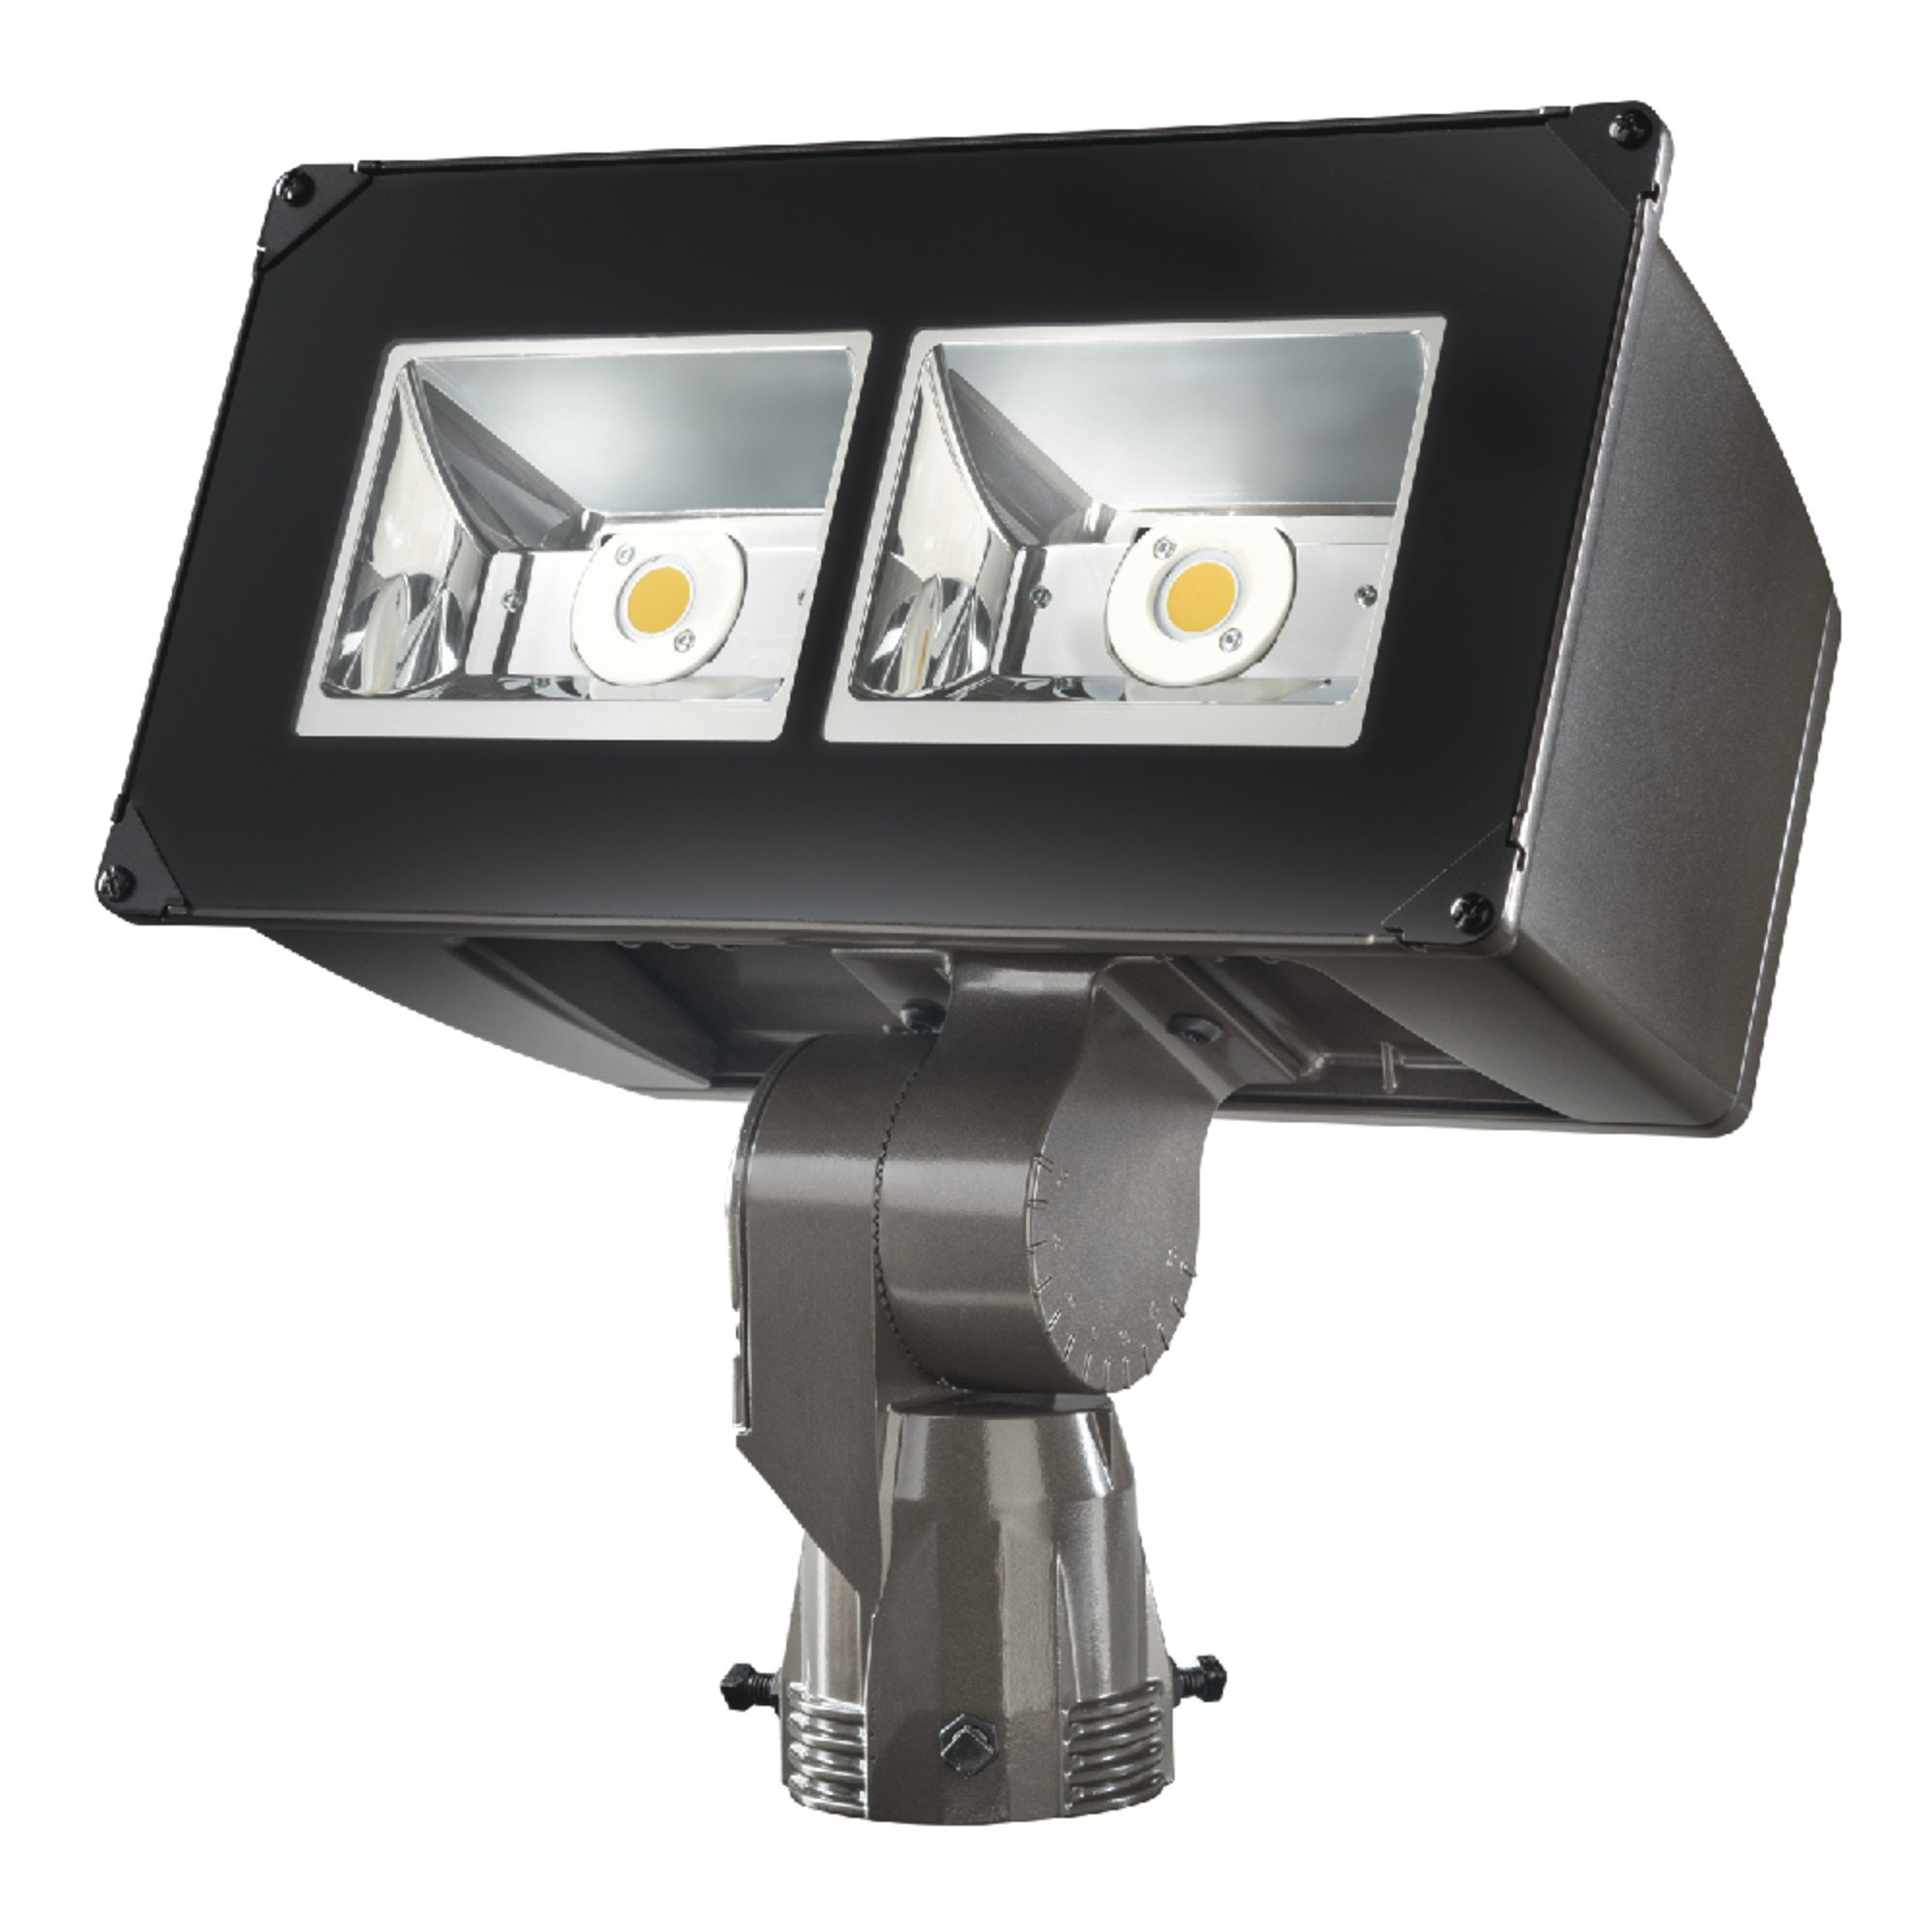 Lumark Nffld-L-C75-S Night Falcon 179W Carbon Outdoor Integrated LED Area Light with Slipfitter Mounting, Bronze